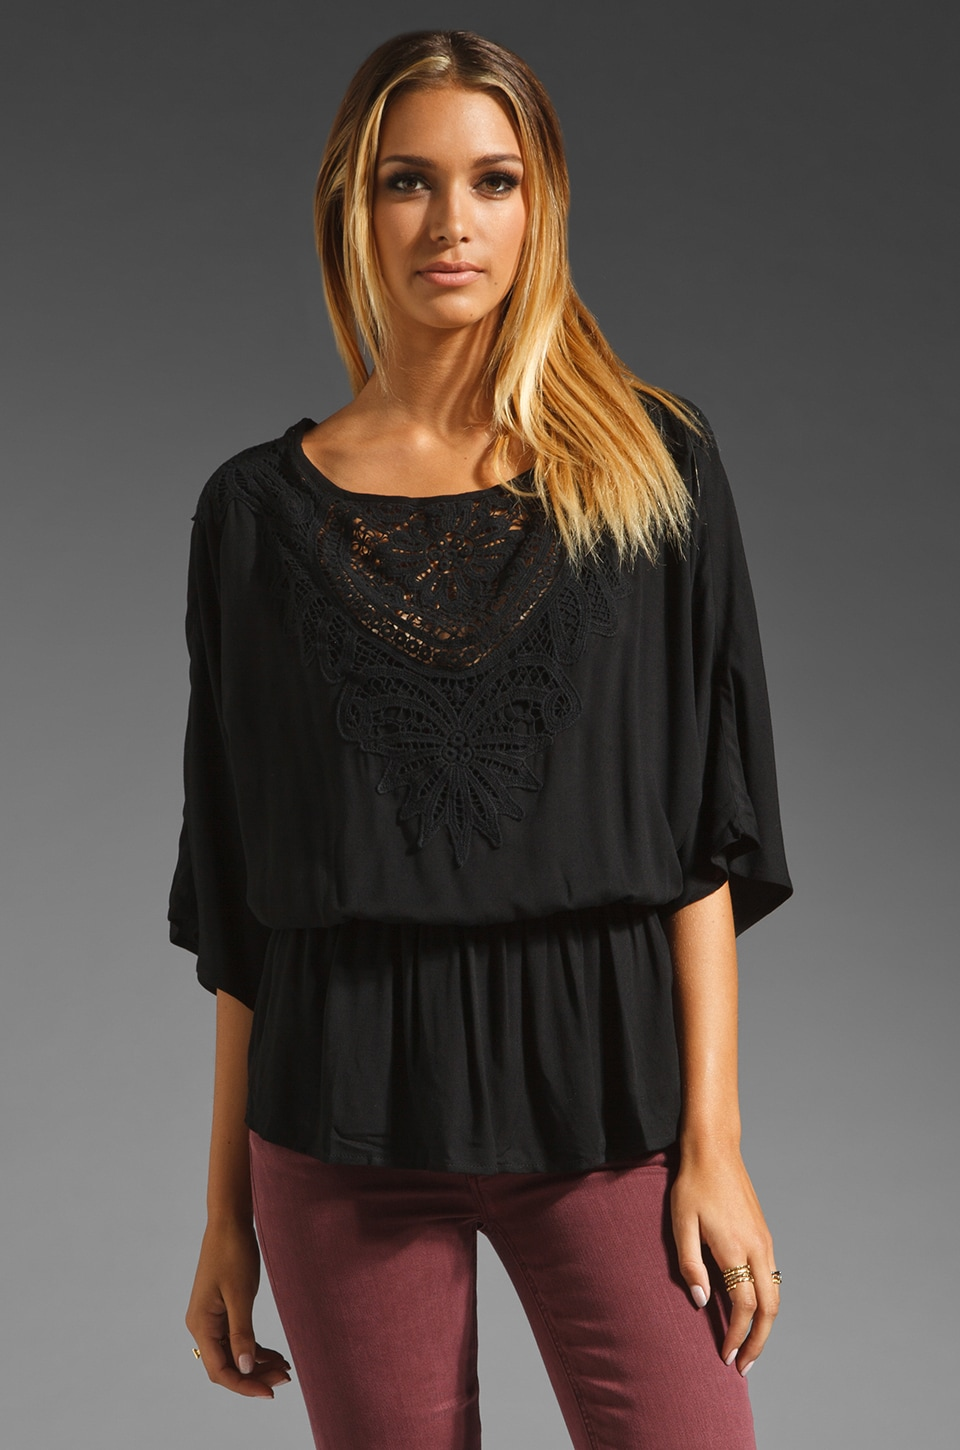 Ella Moss Valerie Lace Blouse in Black